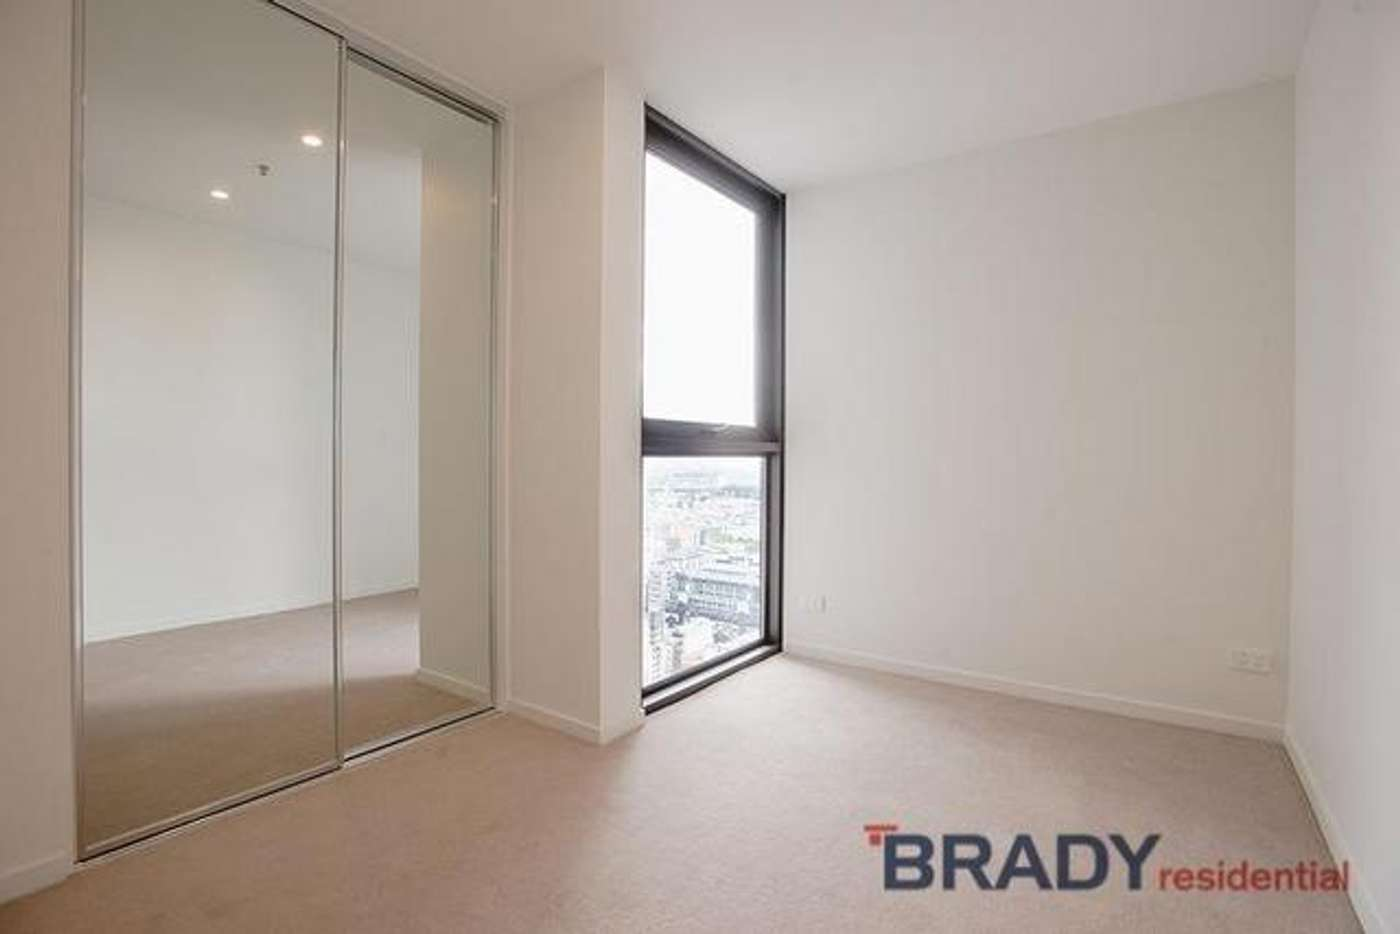 Seventh view of Homely apartment listing, 3501/8 Sutherland Street, Melbourne VIC 3000